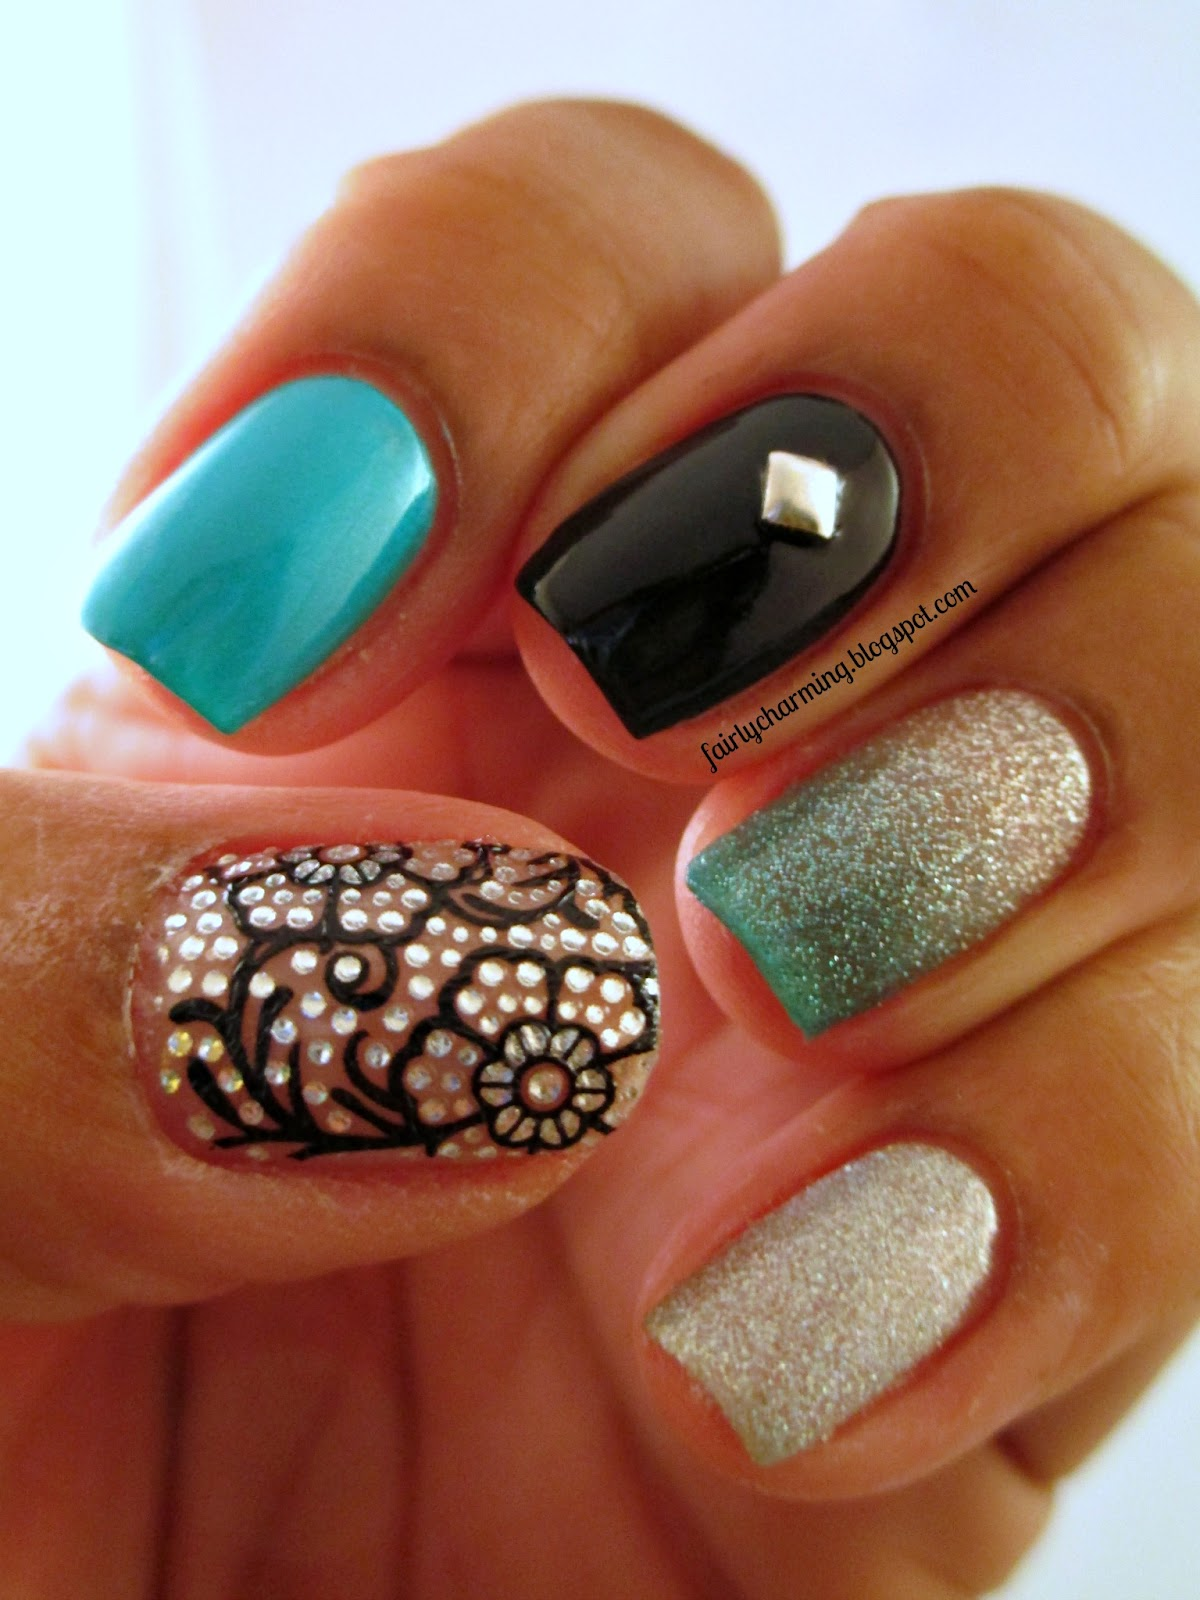 All Nail Trends: Fairly Charming: Not All Nail Stickers Are Created Equal